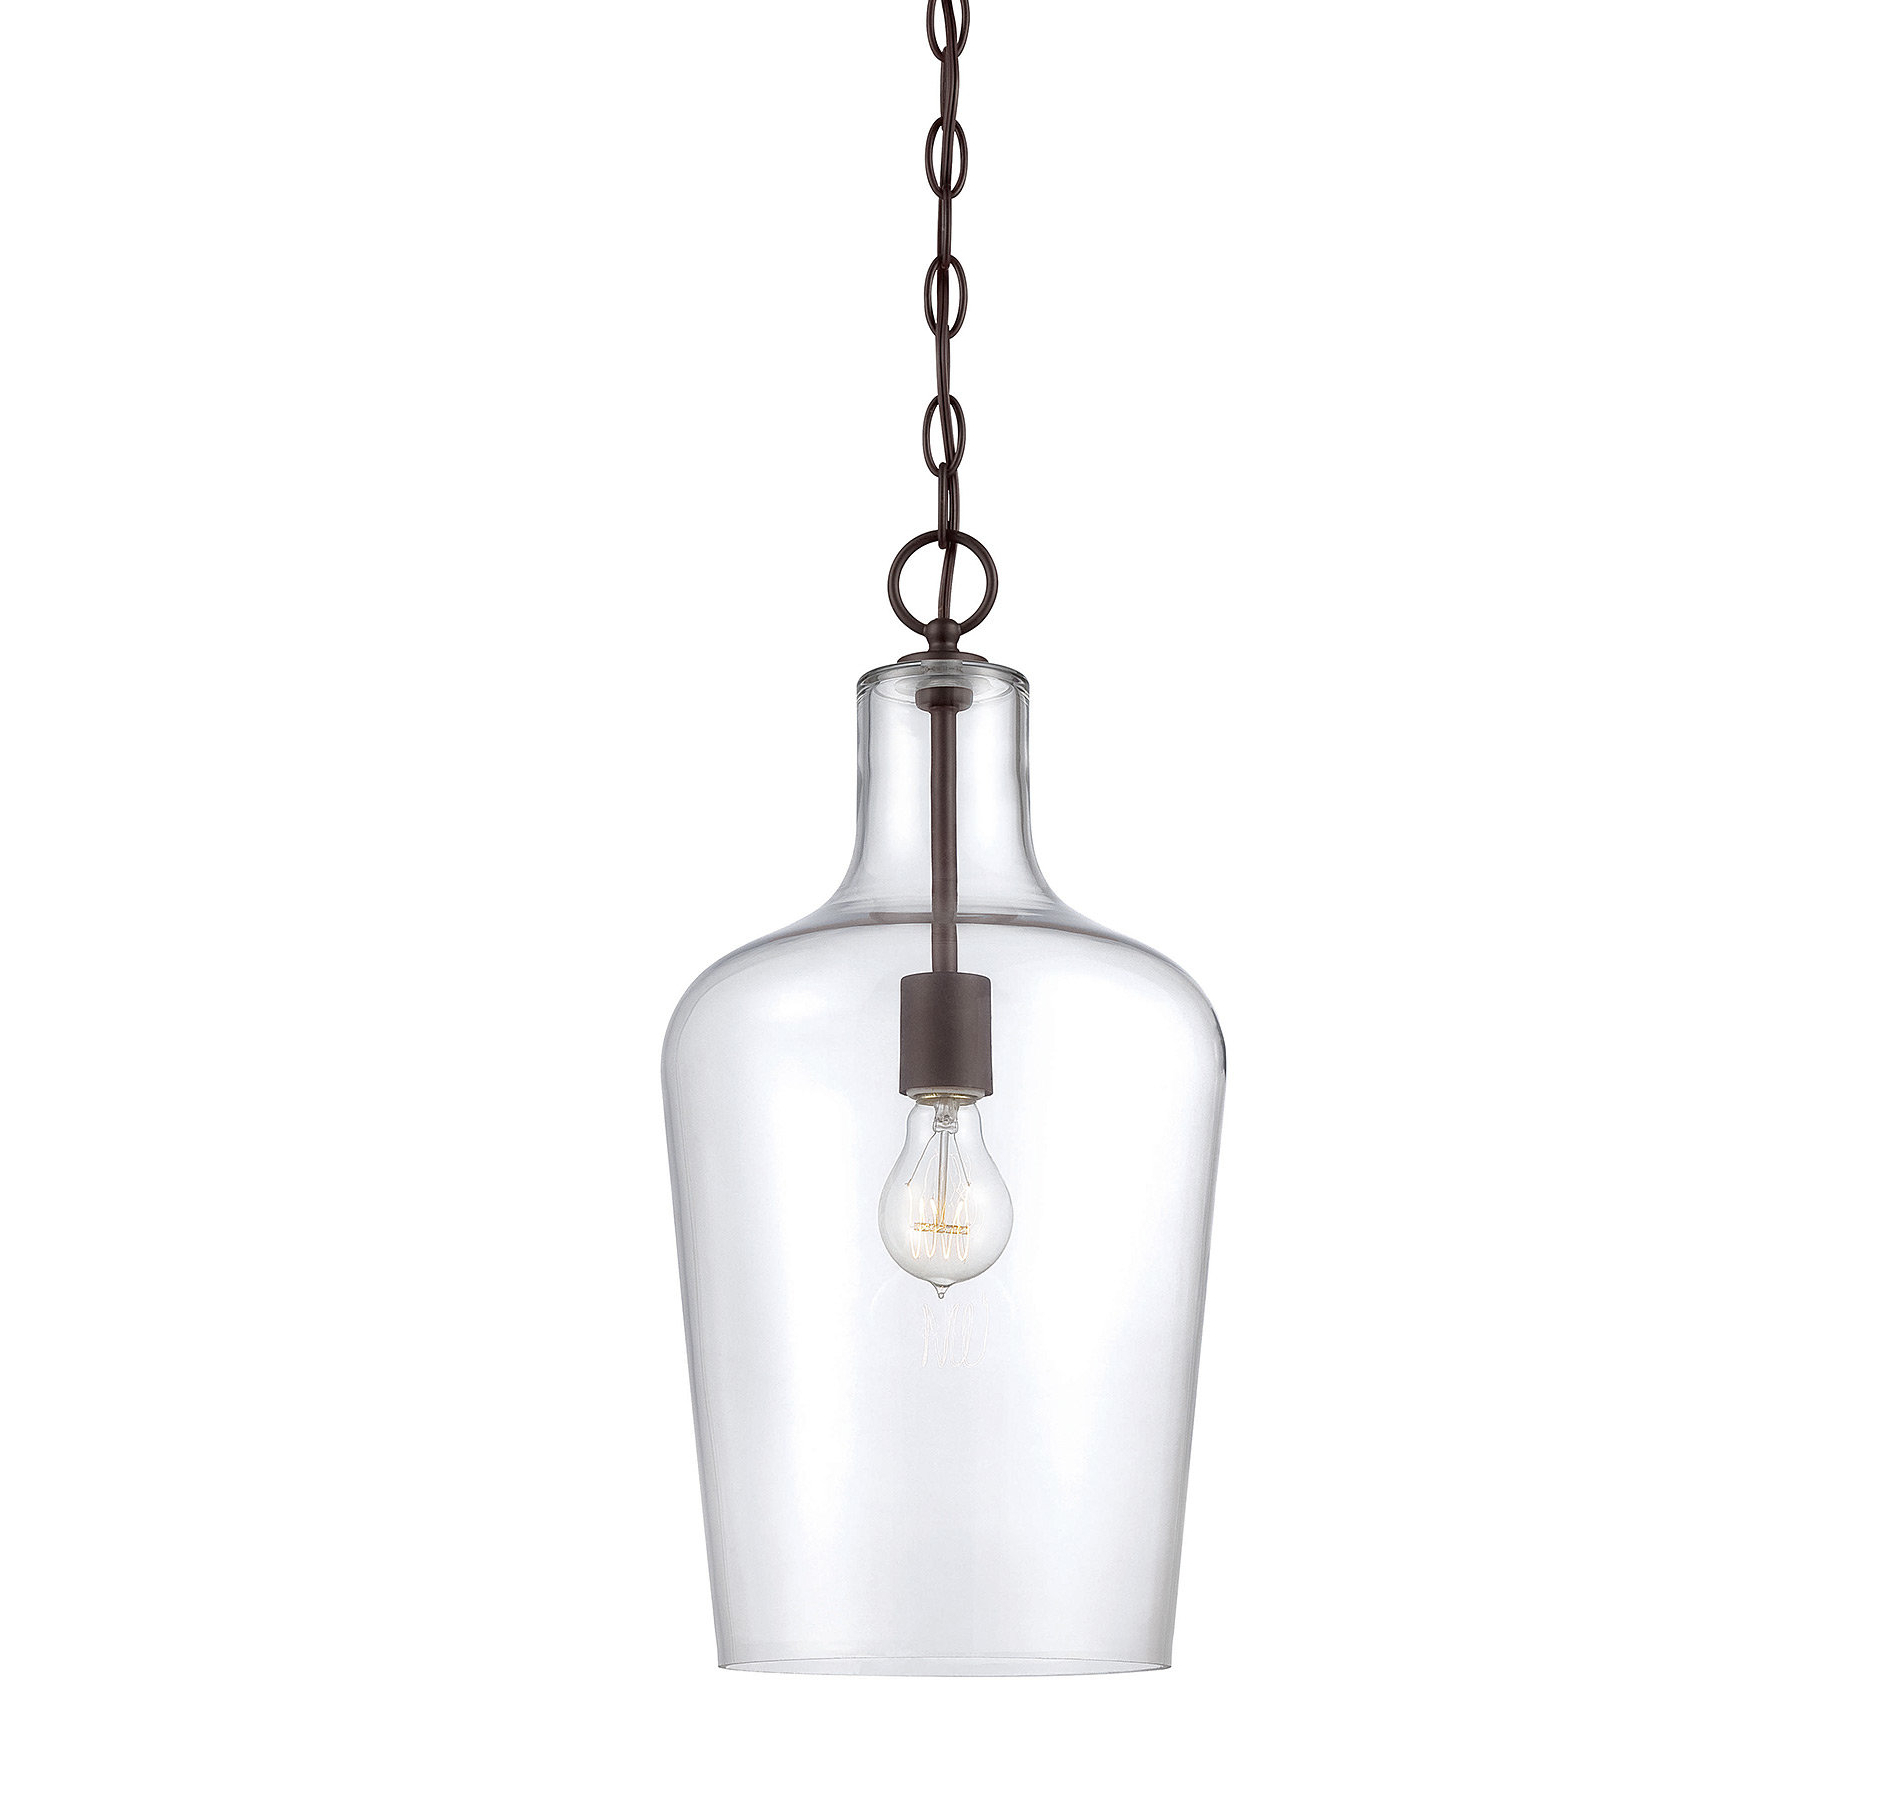 Best And Newest Carey 1 Light Single Bell Pendant Regarding Carey 1 Light Single Bell Pendants (View 1 of 20)